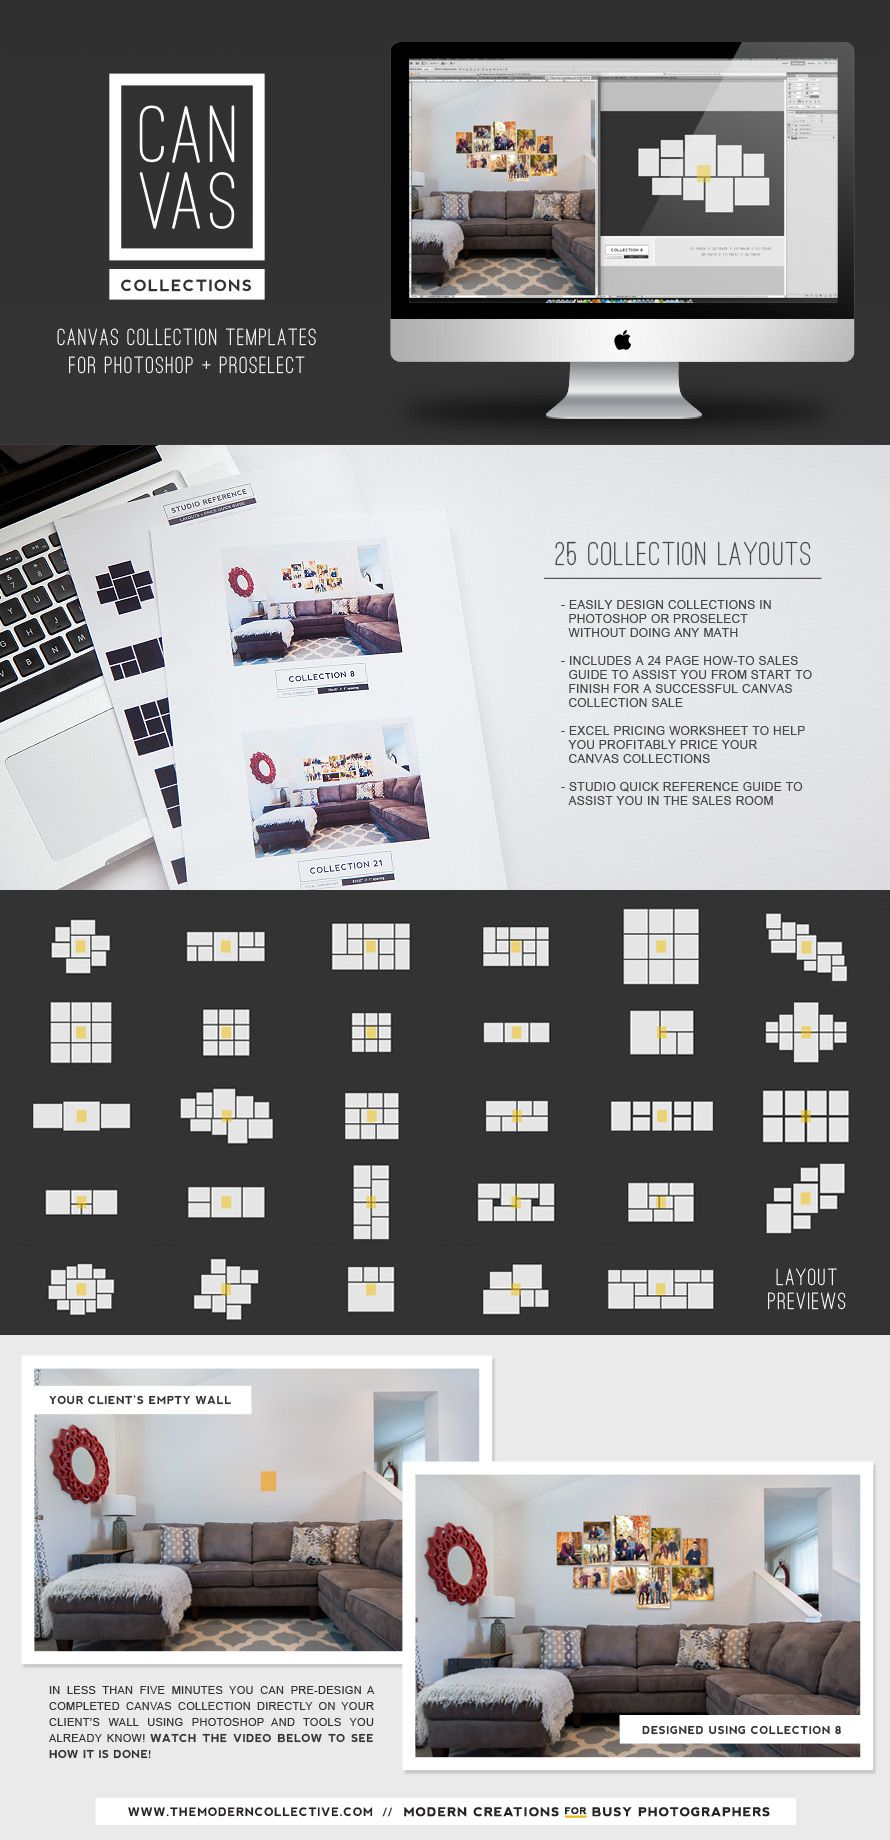 Canvas Collection Templates for Photoshop or ProSelect from The ...